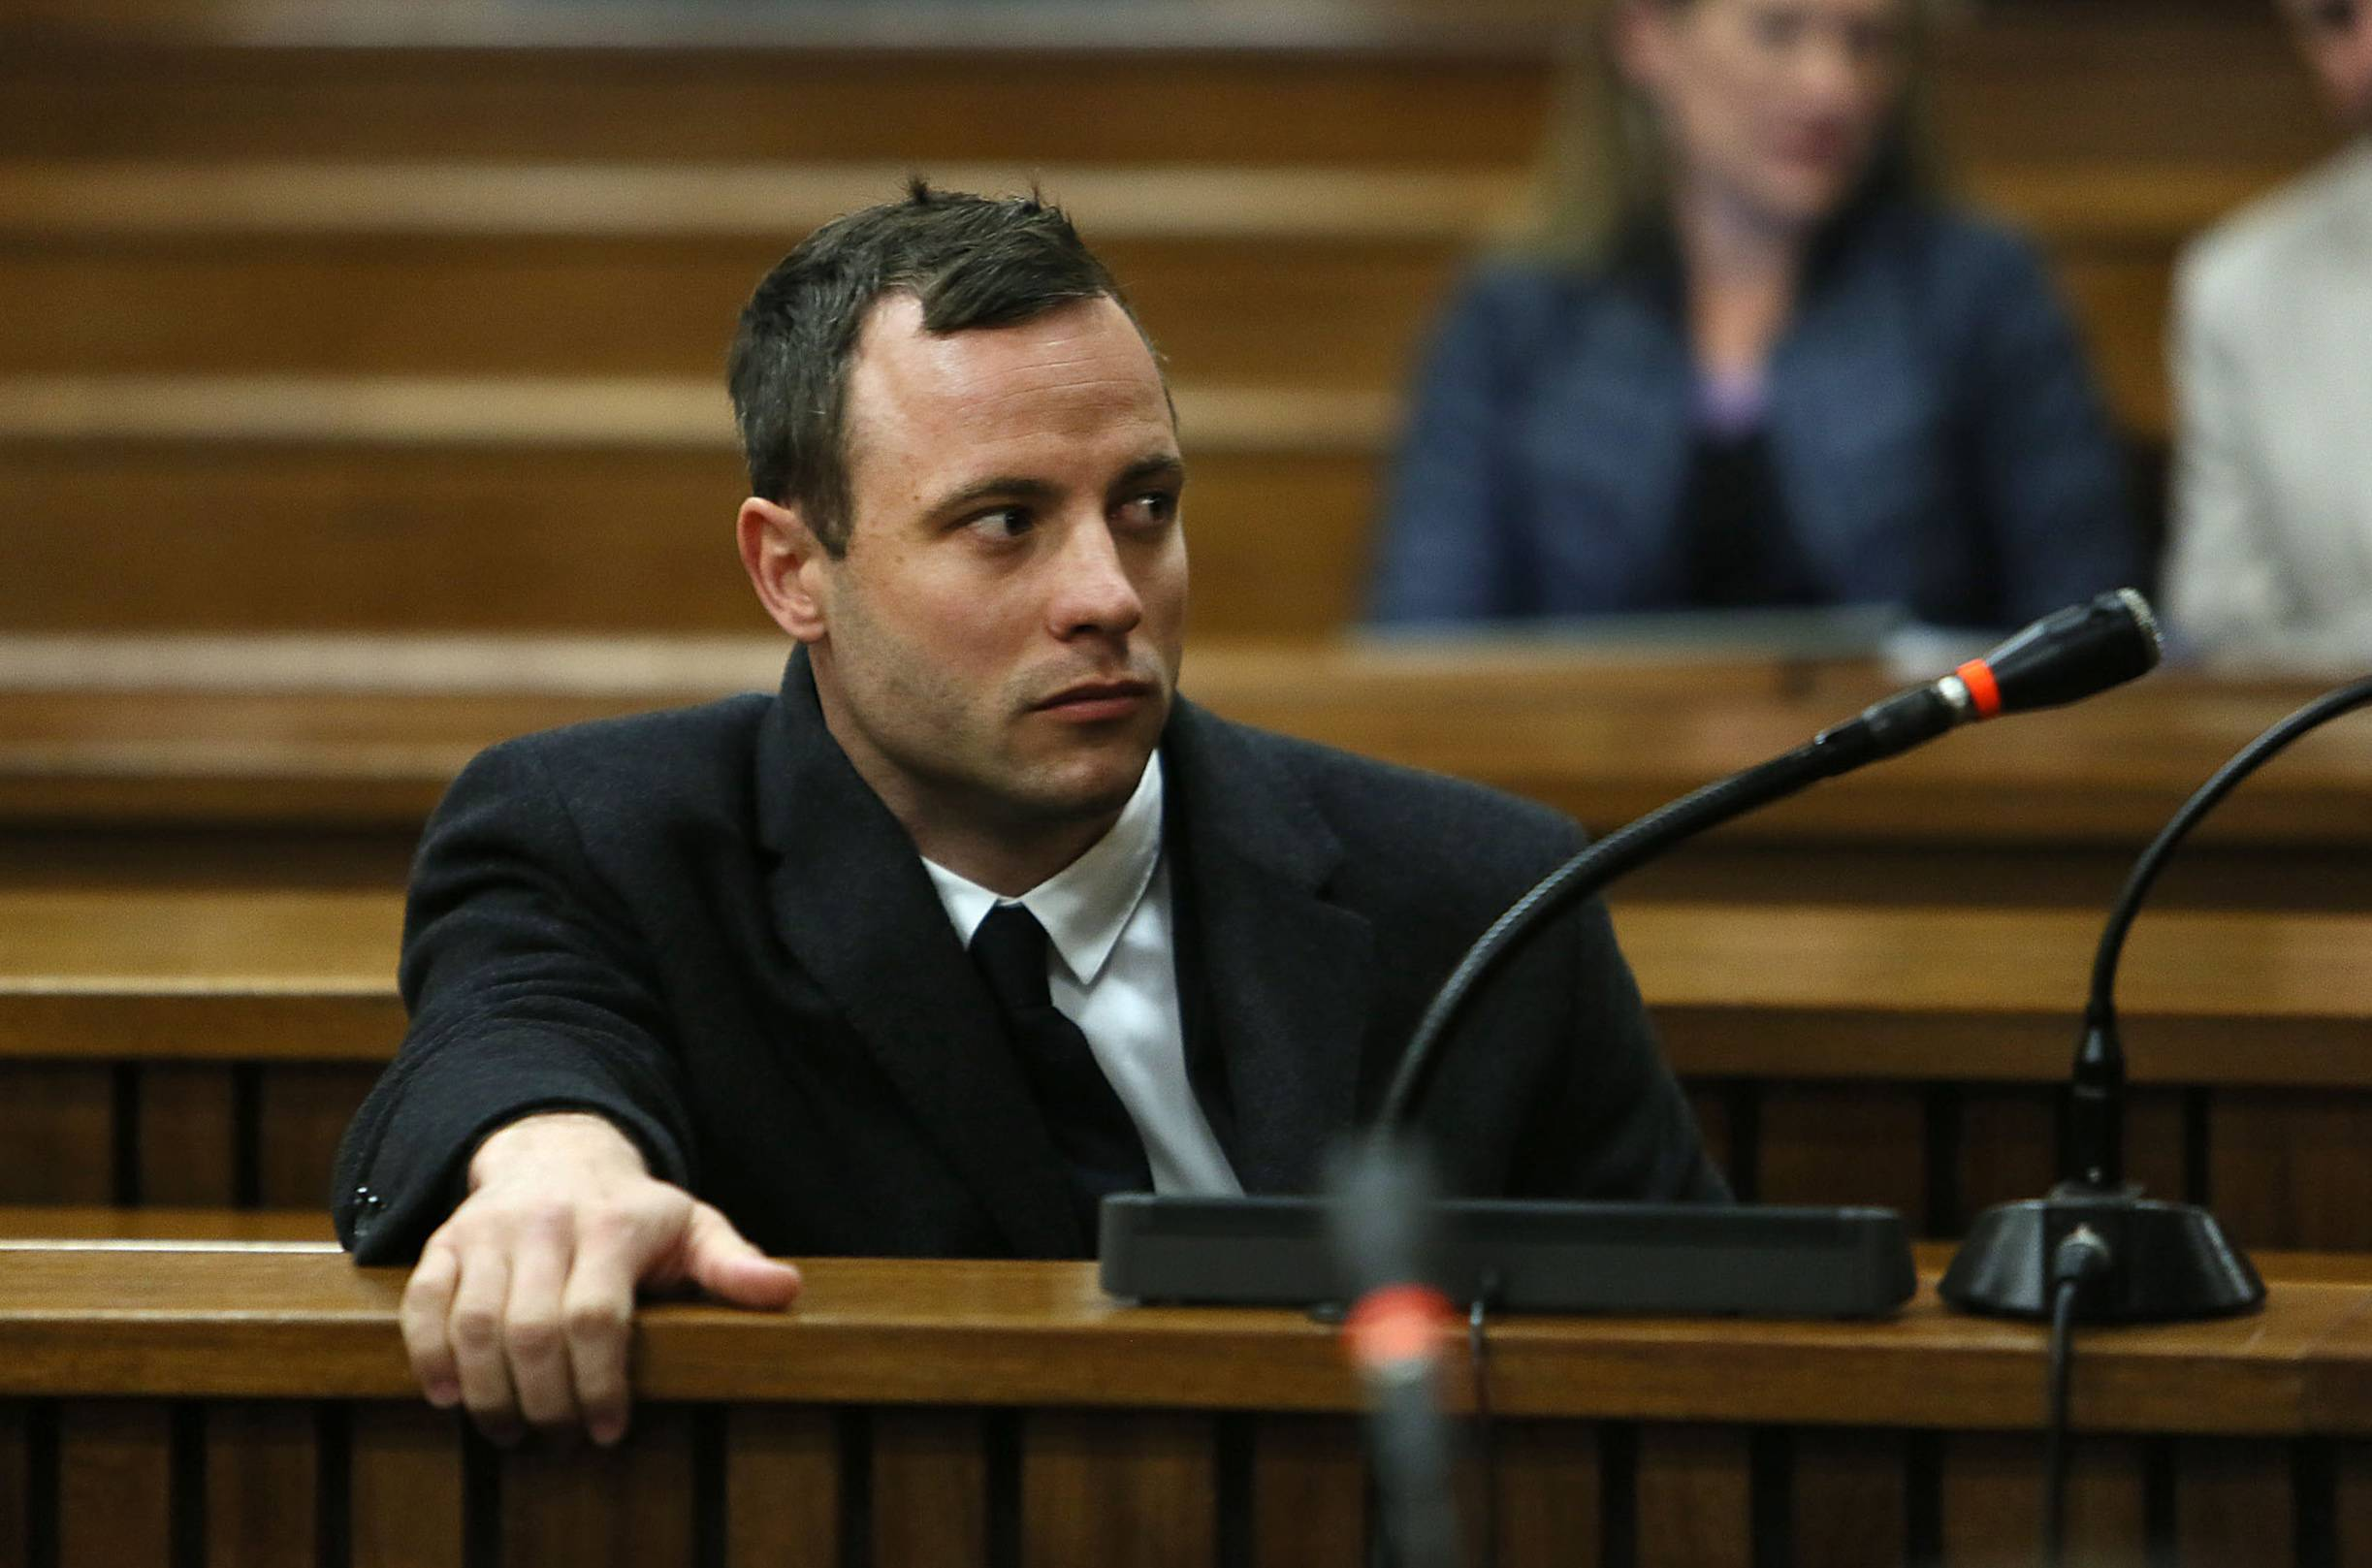 The murder trial of Oscar Pistorius moved closer to a verdict on Tuesday when the defense ended its case.